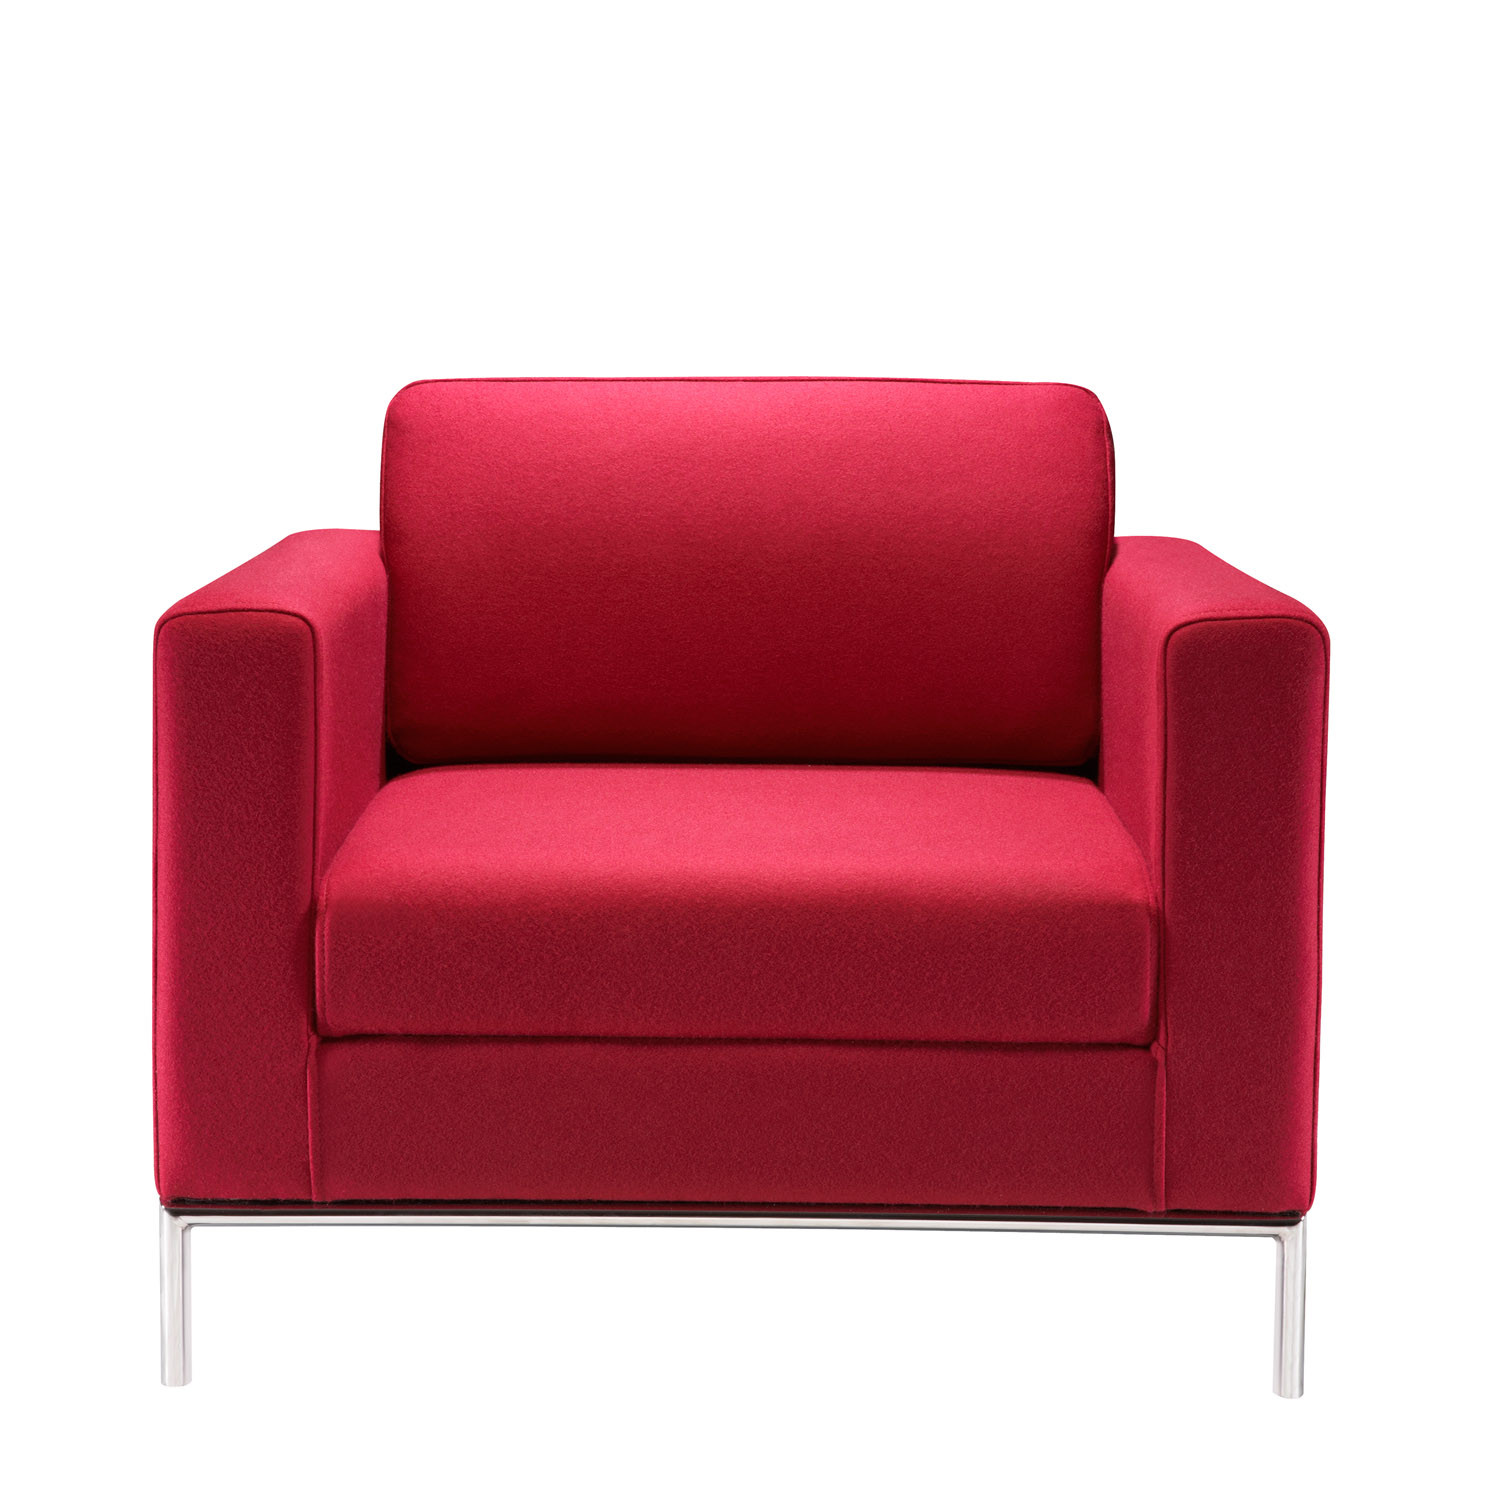 Zeus Soft Seating by Roger Webb Associates